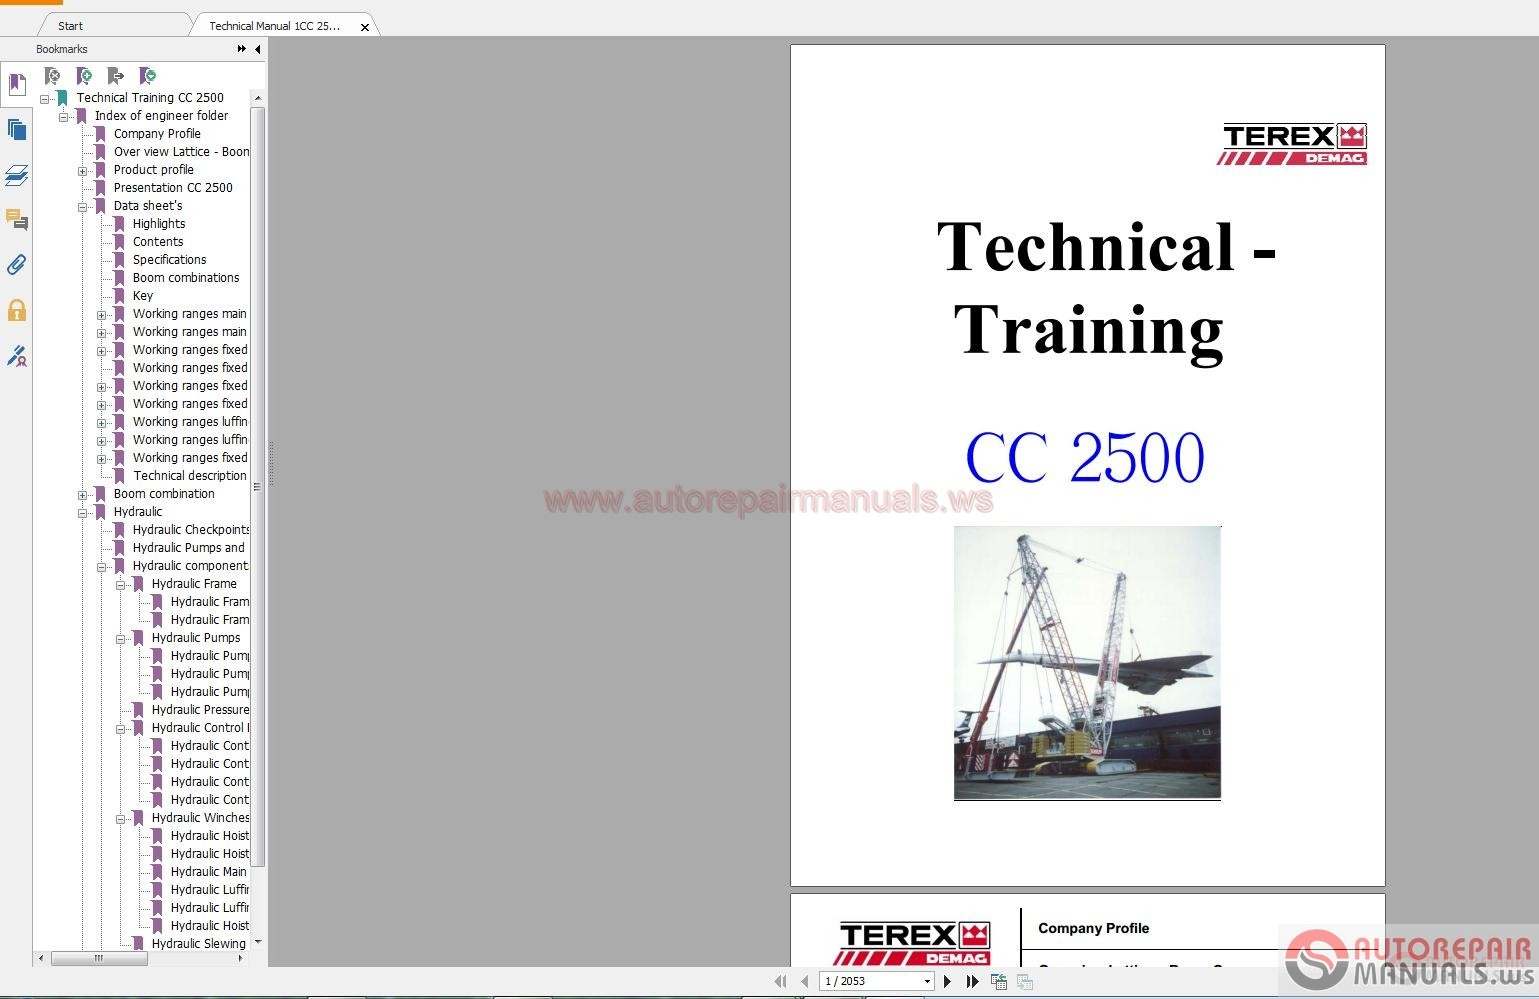 1 24 rc truck with Terex Demag Cc2500 450t Technical Training on Traxxas Jato 33 And E Maxx Now Ship With Tq 24ghz Radio besides 10 2 4Ghz Exceed RC Electric AceTiger Rally Car RTR Red also Terex Demag Cc2500 450t Technical Training furthermore Trailer Fender Step Right Rear Curb Side 22 X 12 X 35 X 15 14 Gauge Steel HRPO S515RC14 B p 1771 as well Puch Mv50 Paars Hoog Stuur 1op10 P 10449.